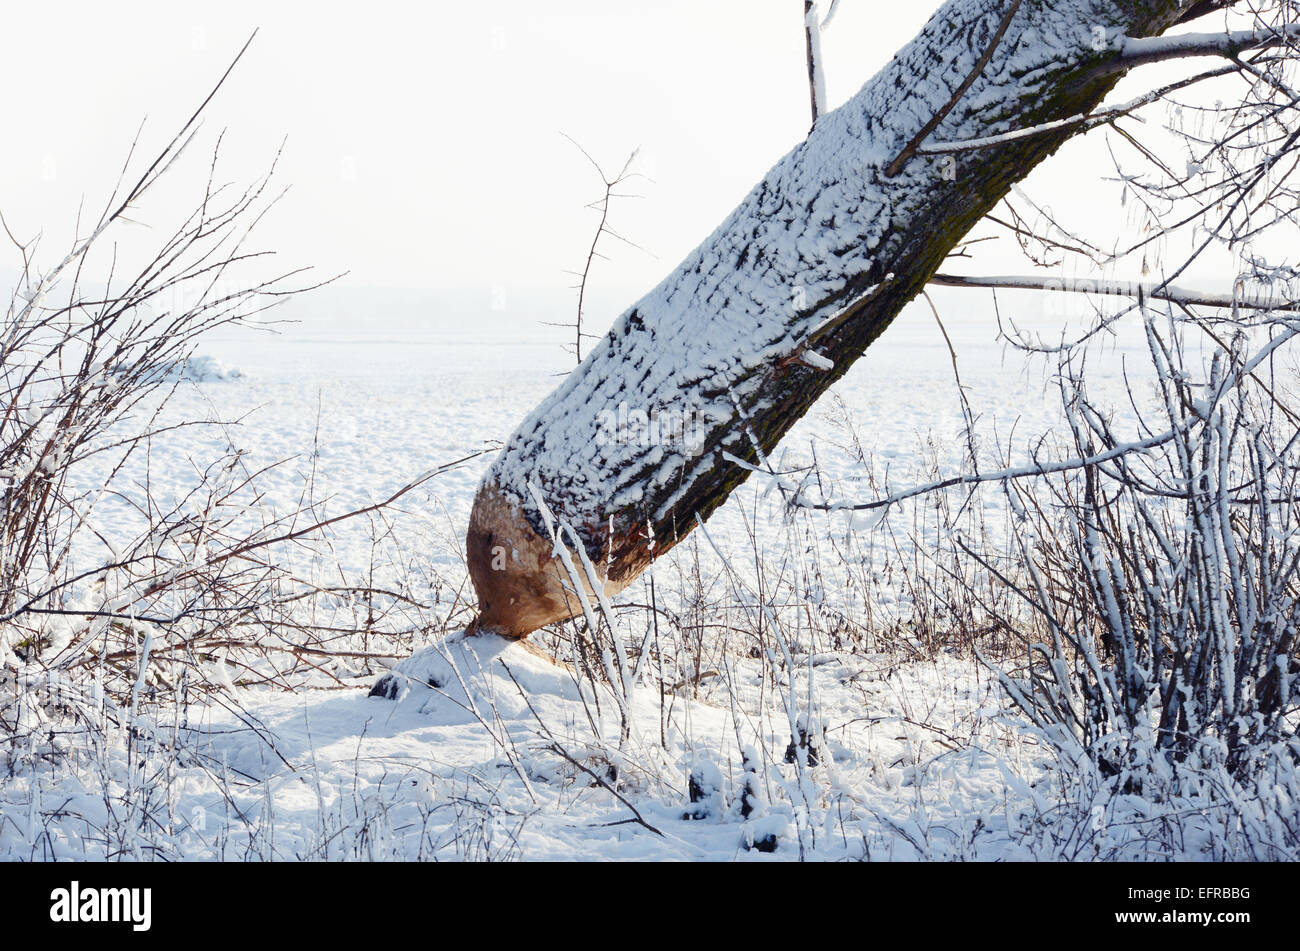 Tree trunk overturned by a beaver Stock Photo